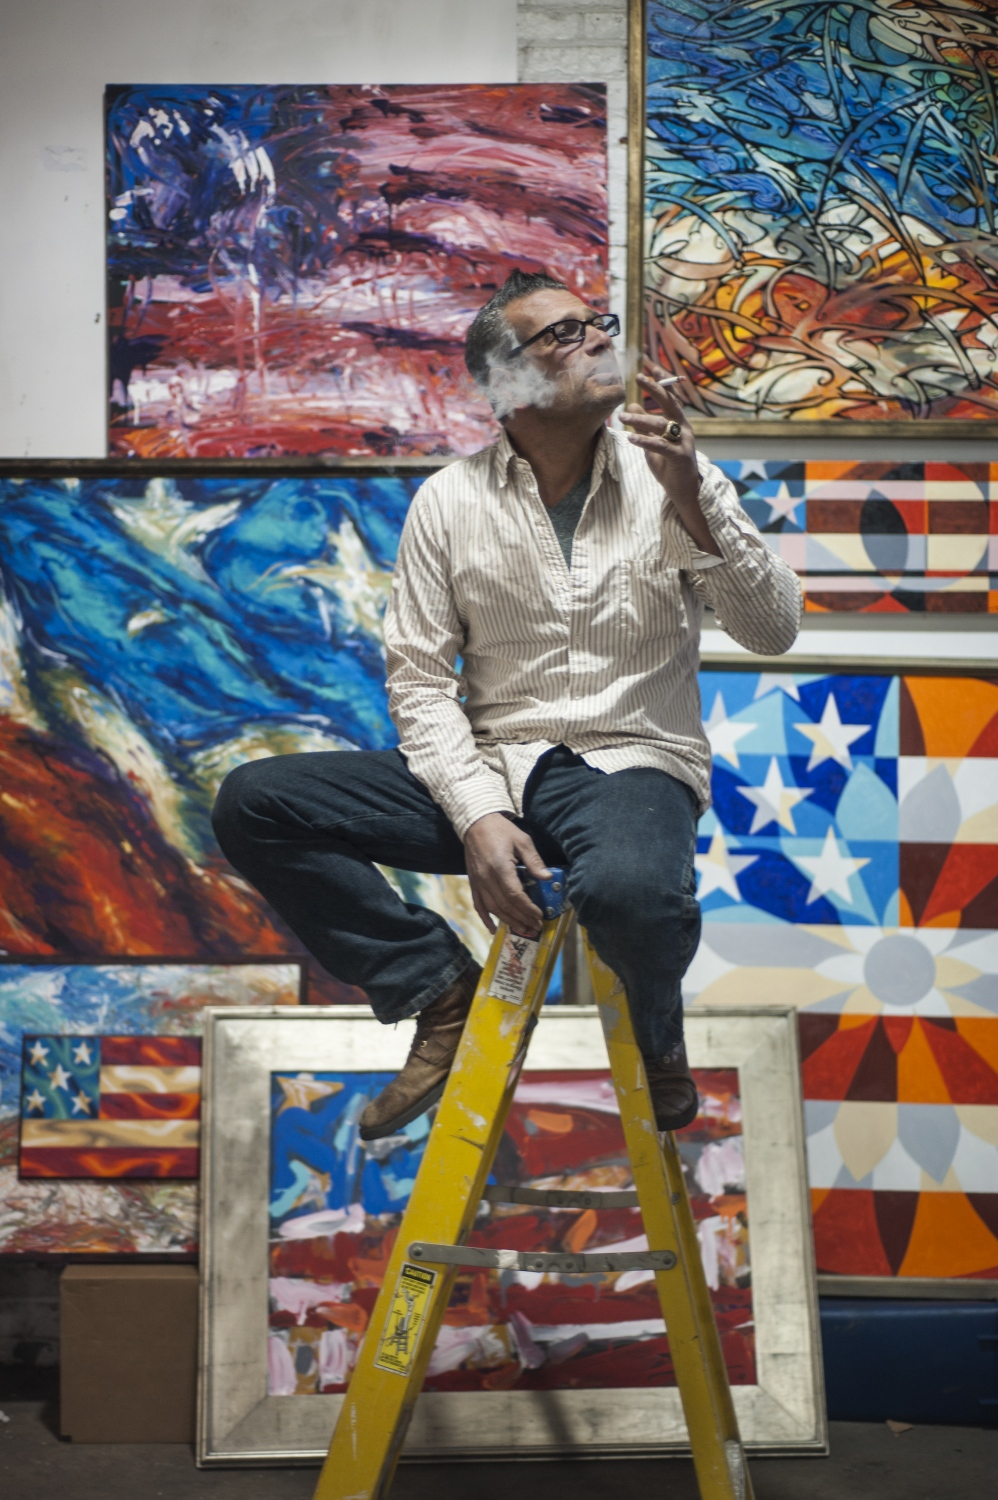 "Scott LoBaido is a painter from Staten Island who makes large-scale renditions of the American flag and abstractions of patriotic symbols. He has toured all 50 states, painting a giant flag in each state to commemorate U.S. veterans. He is also known for his vocal support for Trump in the 2016 election. As a result of his political beliefs, he said he has long been an outsider in the art world. He also said other artists who voted for Trump are wary of the media. Through his art, LoBaido communicates the romance of American nationalism that he believes has been entrenched in negativity. He says his art is for the ""deplorables – those who support Trump, work hard, and don't have time for fancy hoity-toity art."" Being American should be something to be proud of, according to LoBaido. ""We're not perfect, but we're the best there is. You come here and you struggle, you know? I think that's sexy."""